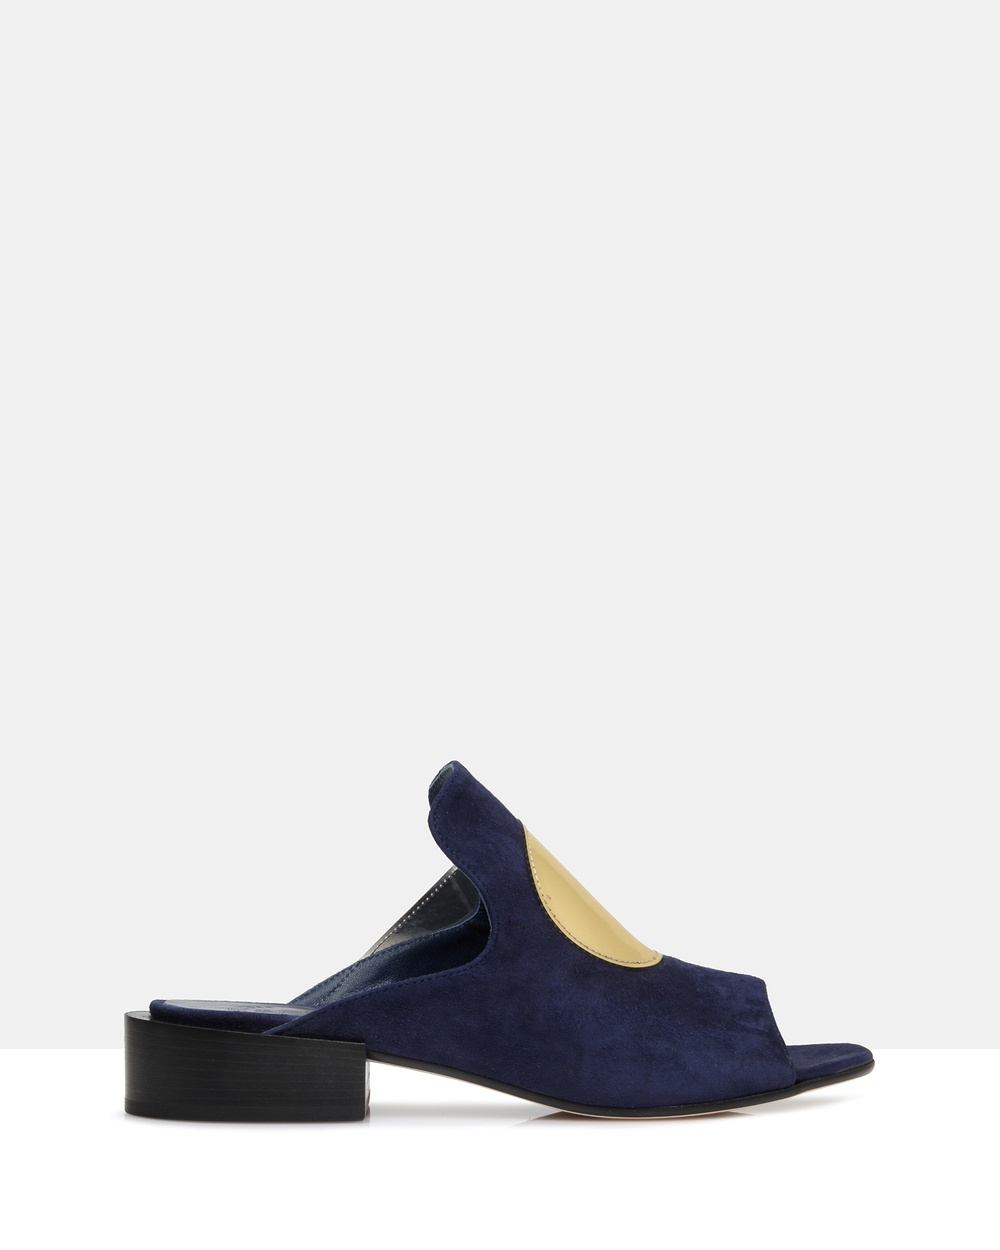 Beau Coops Valerie Open Toe Mules Mid-low heels Navy Valerie Open Toe Mules